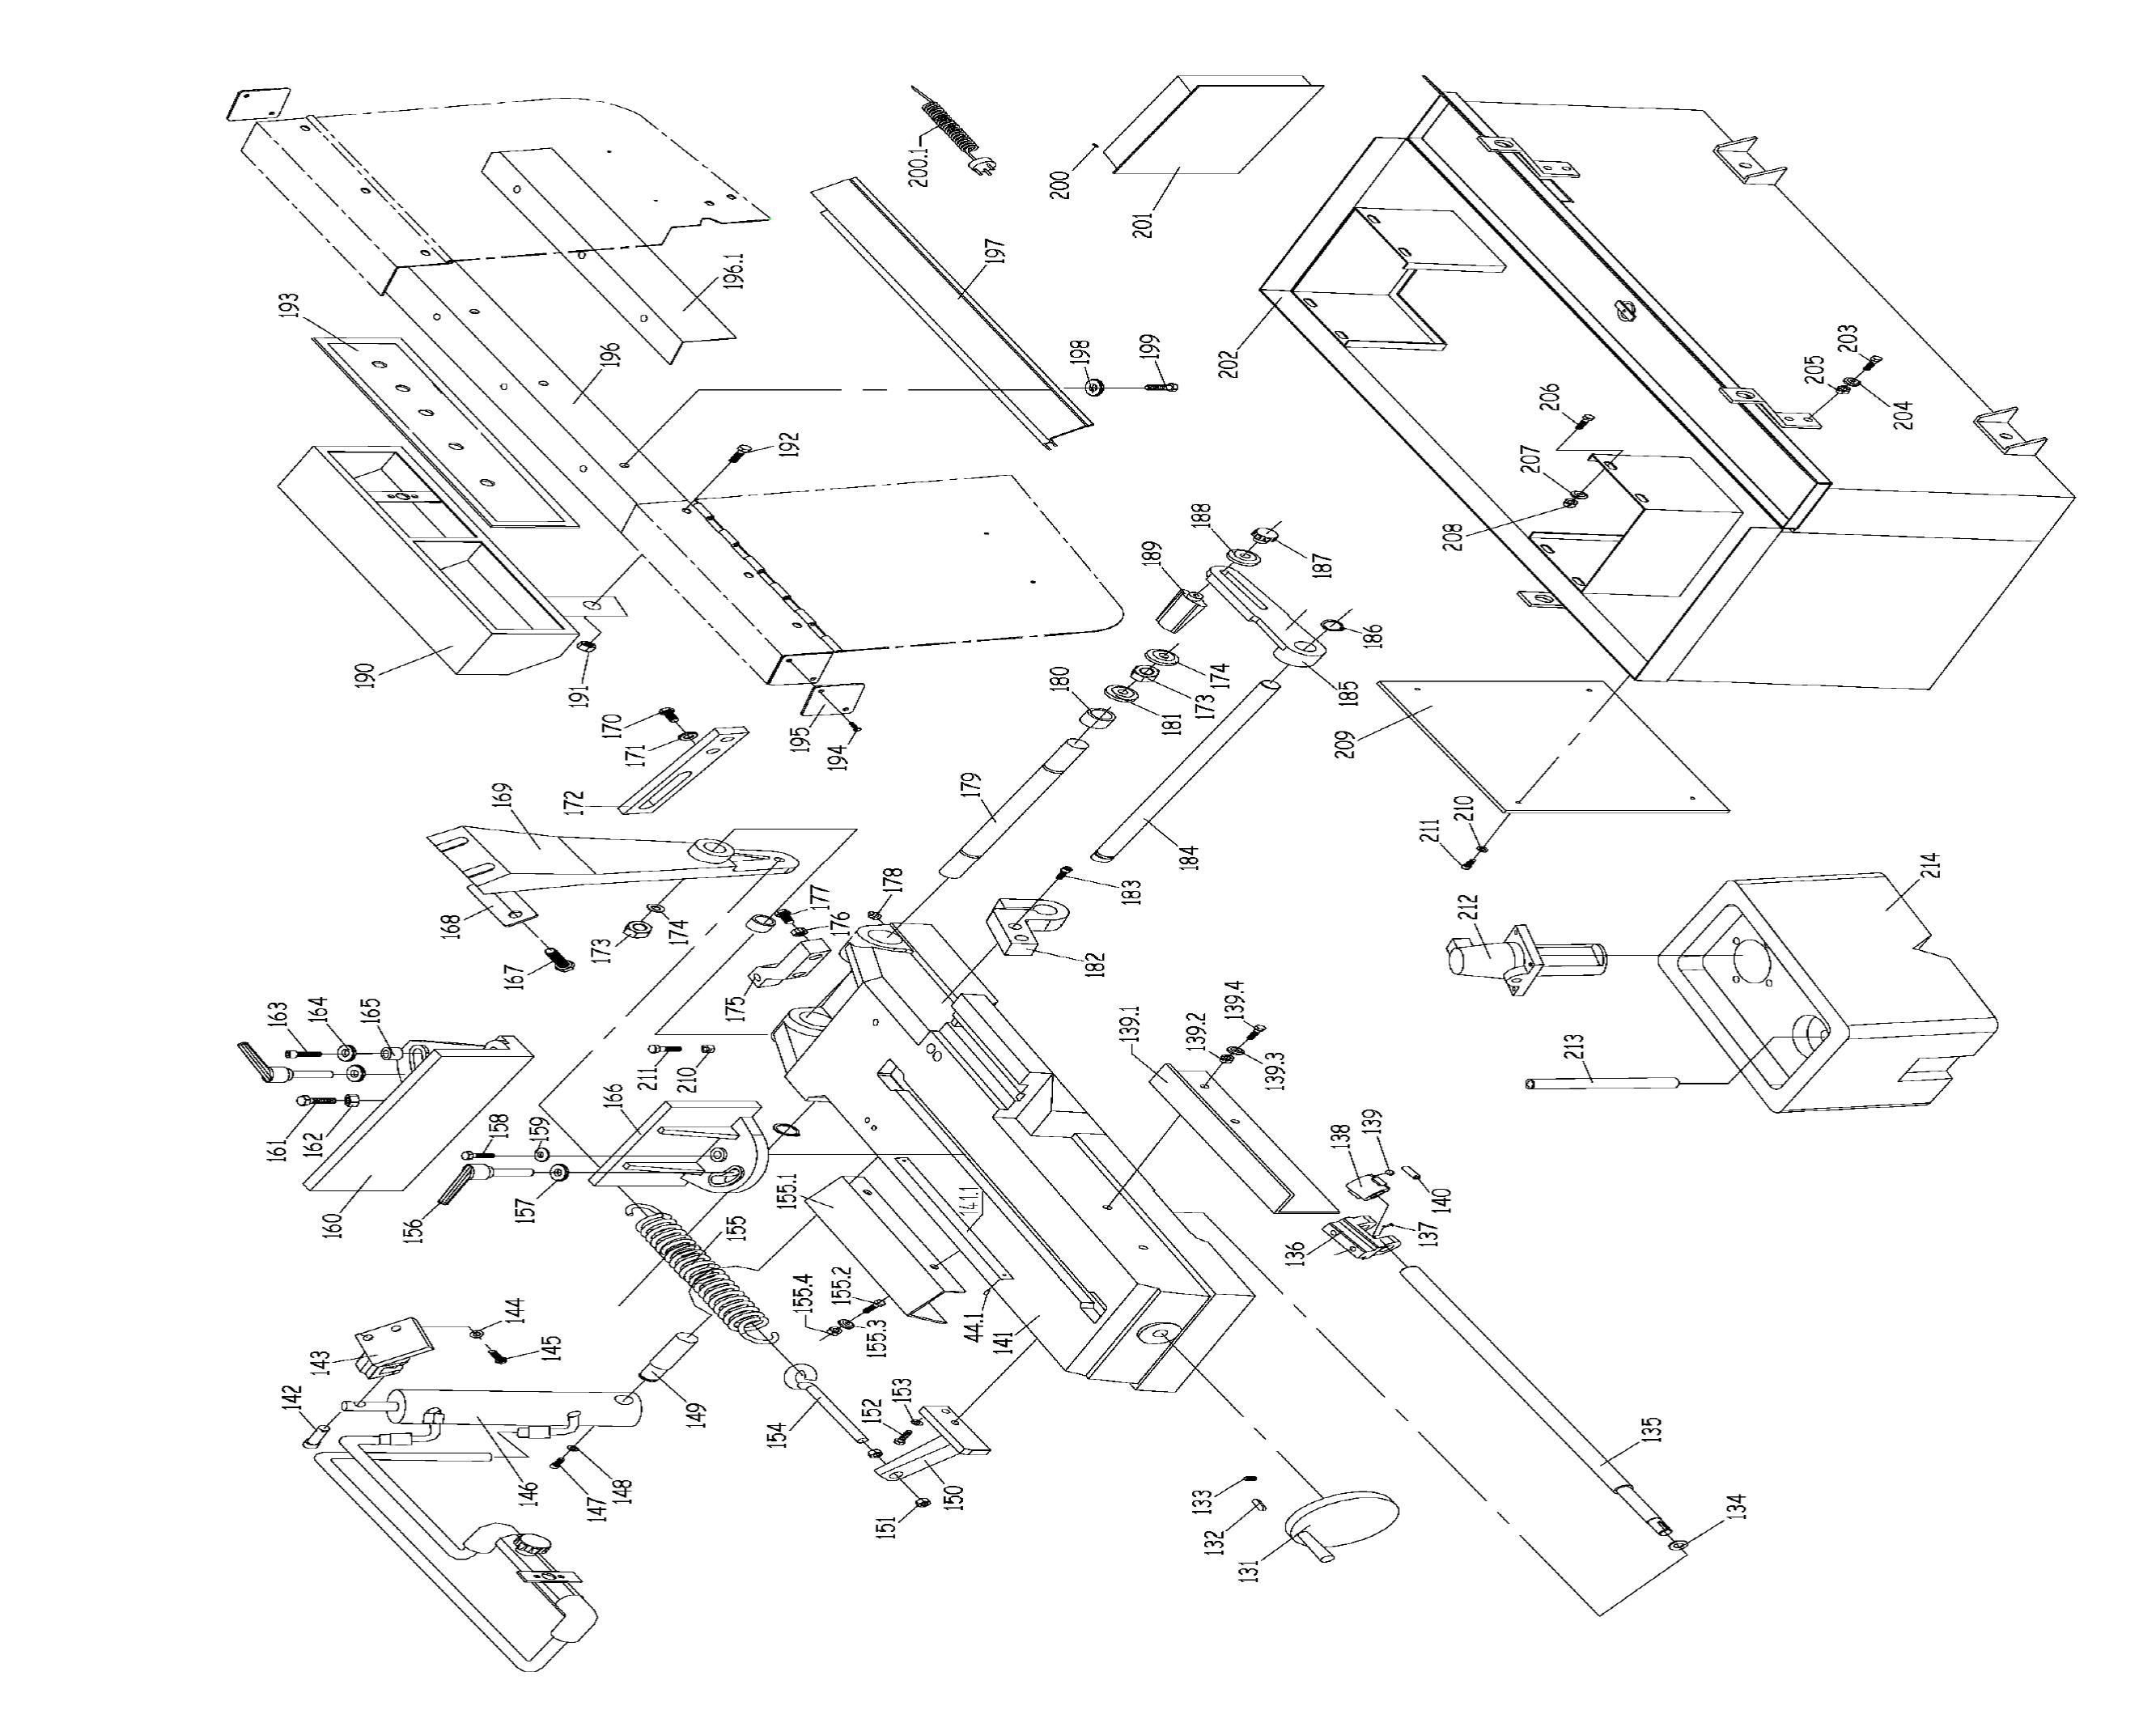 sip 01597 18 u0026quot  metal cutting bandsaw diagram